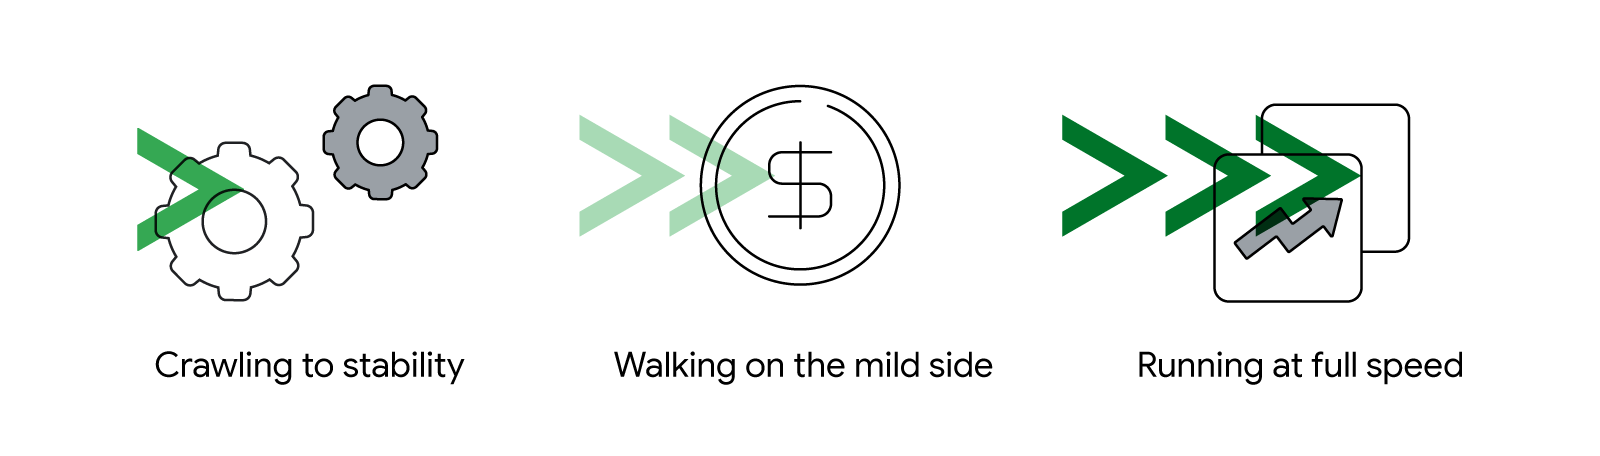 3 illustrated icons, overlaid with green fast forward arrows, represent the concepts of crawling to stability, walking on the mild side, and running at full speed.